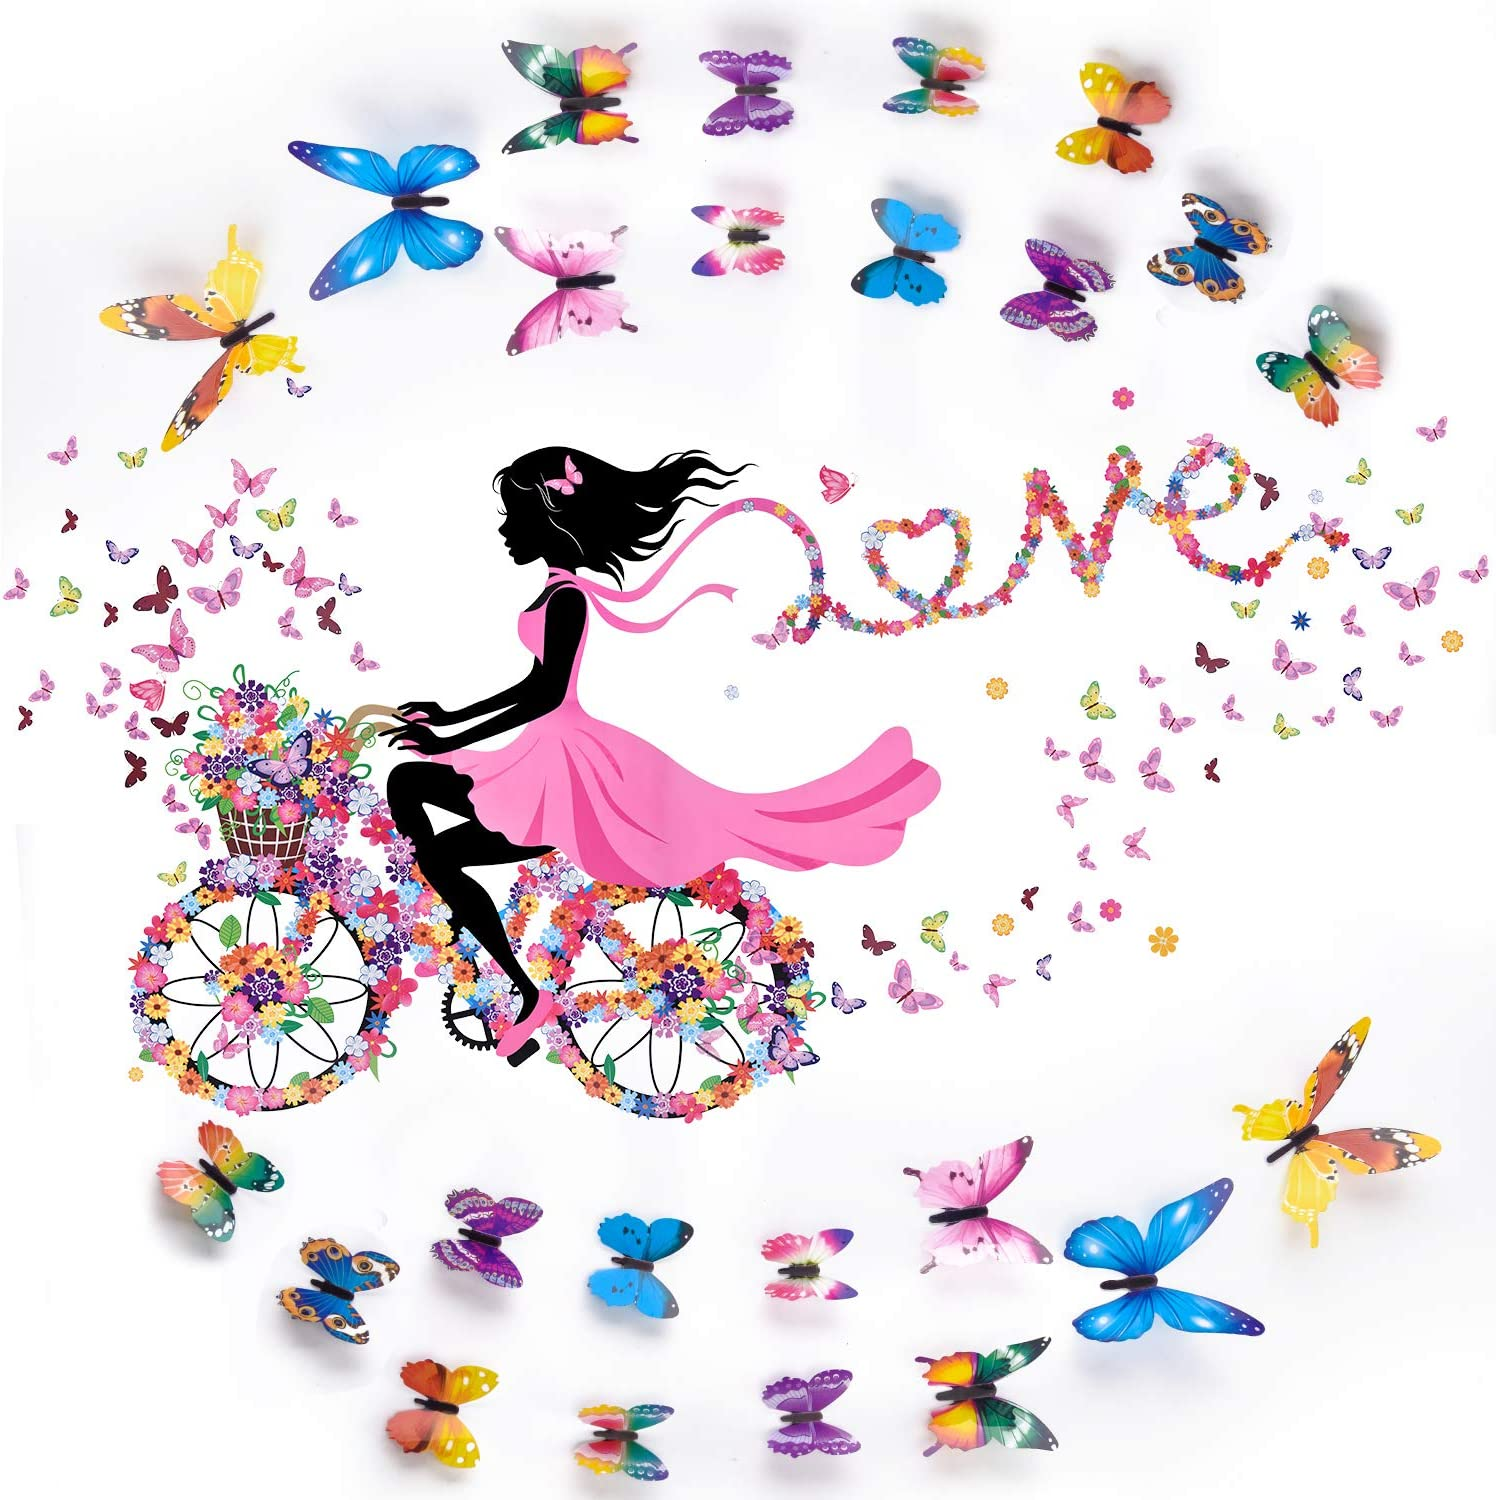 25 Pieces 3D Butterfly Wall Decals and Girl Nursery Decoration Set Removable Flowers and Butterflies Waterproof Wall Art Stickers for Home Kids Room Bedroom Decor